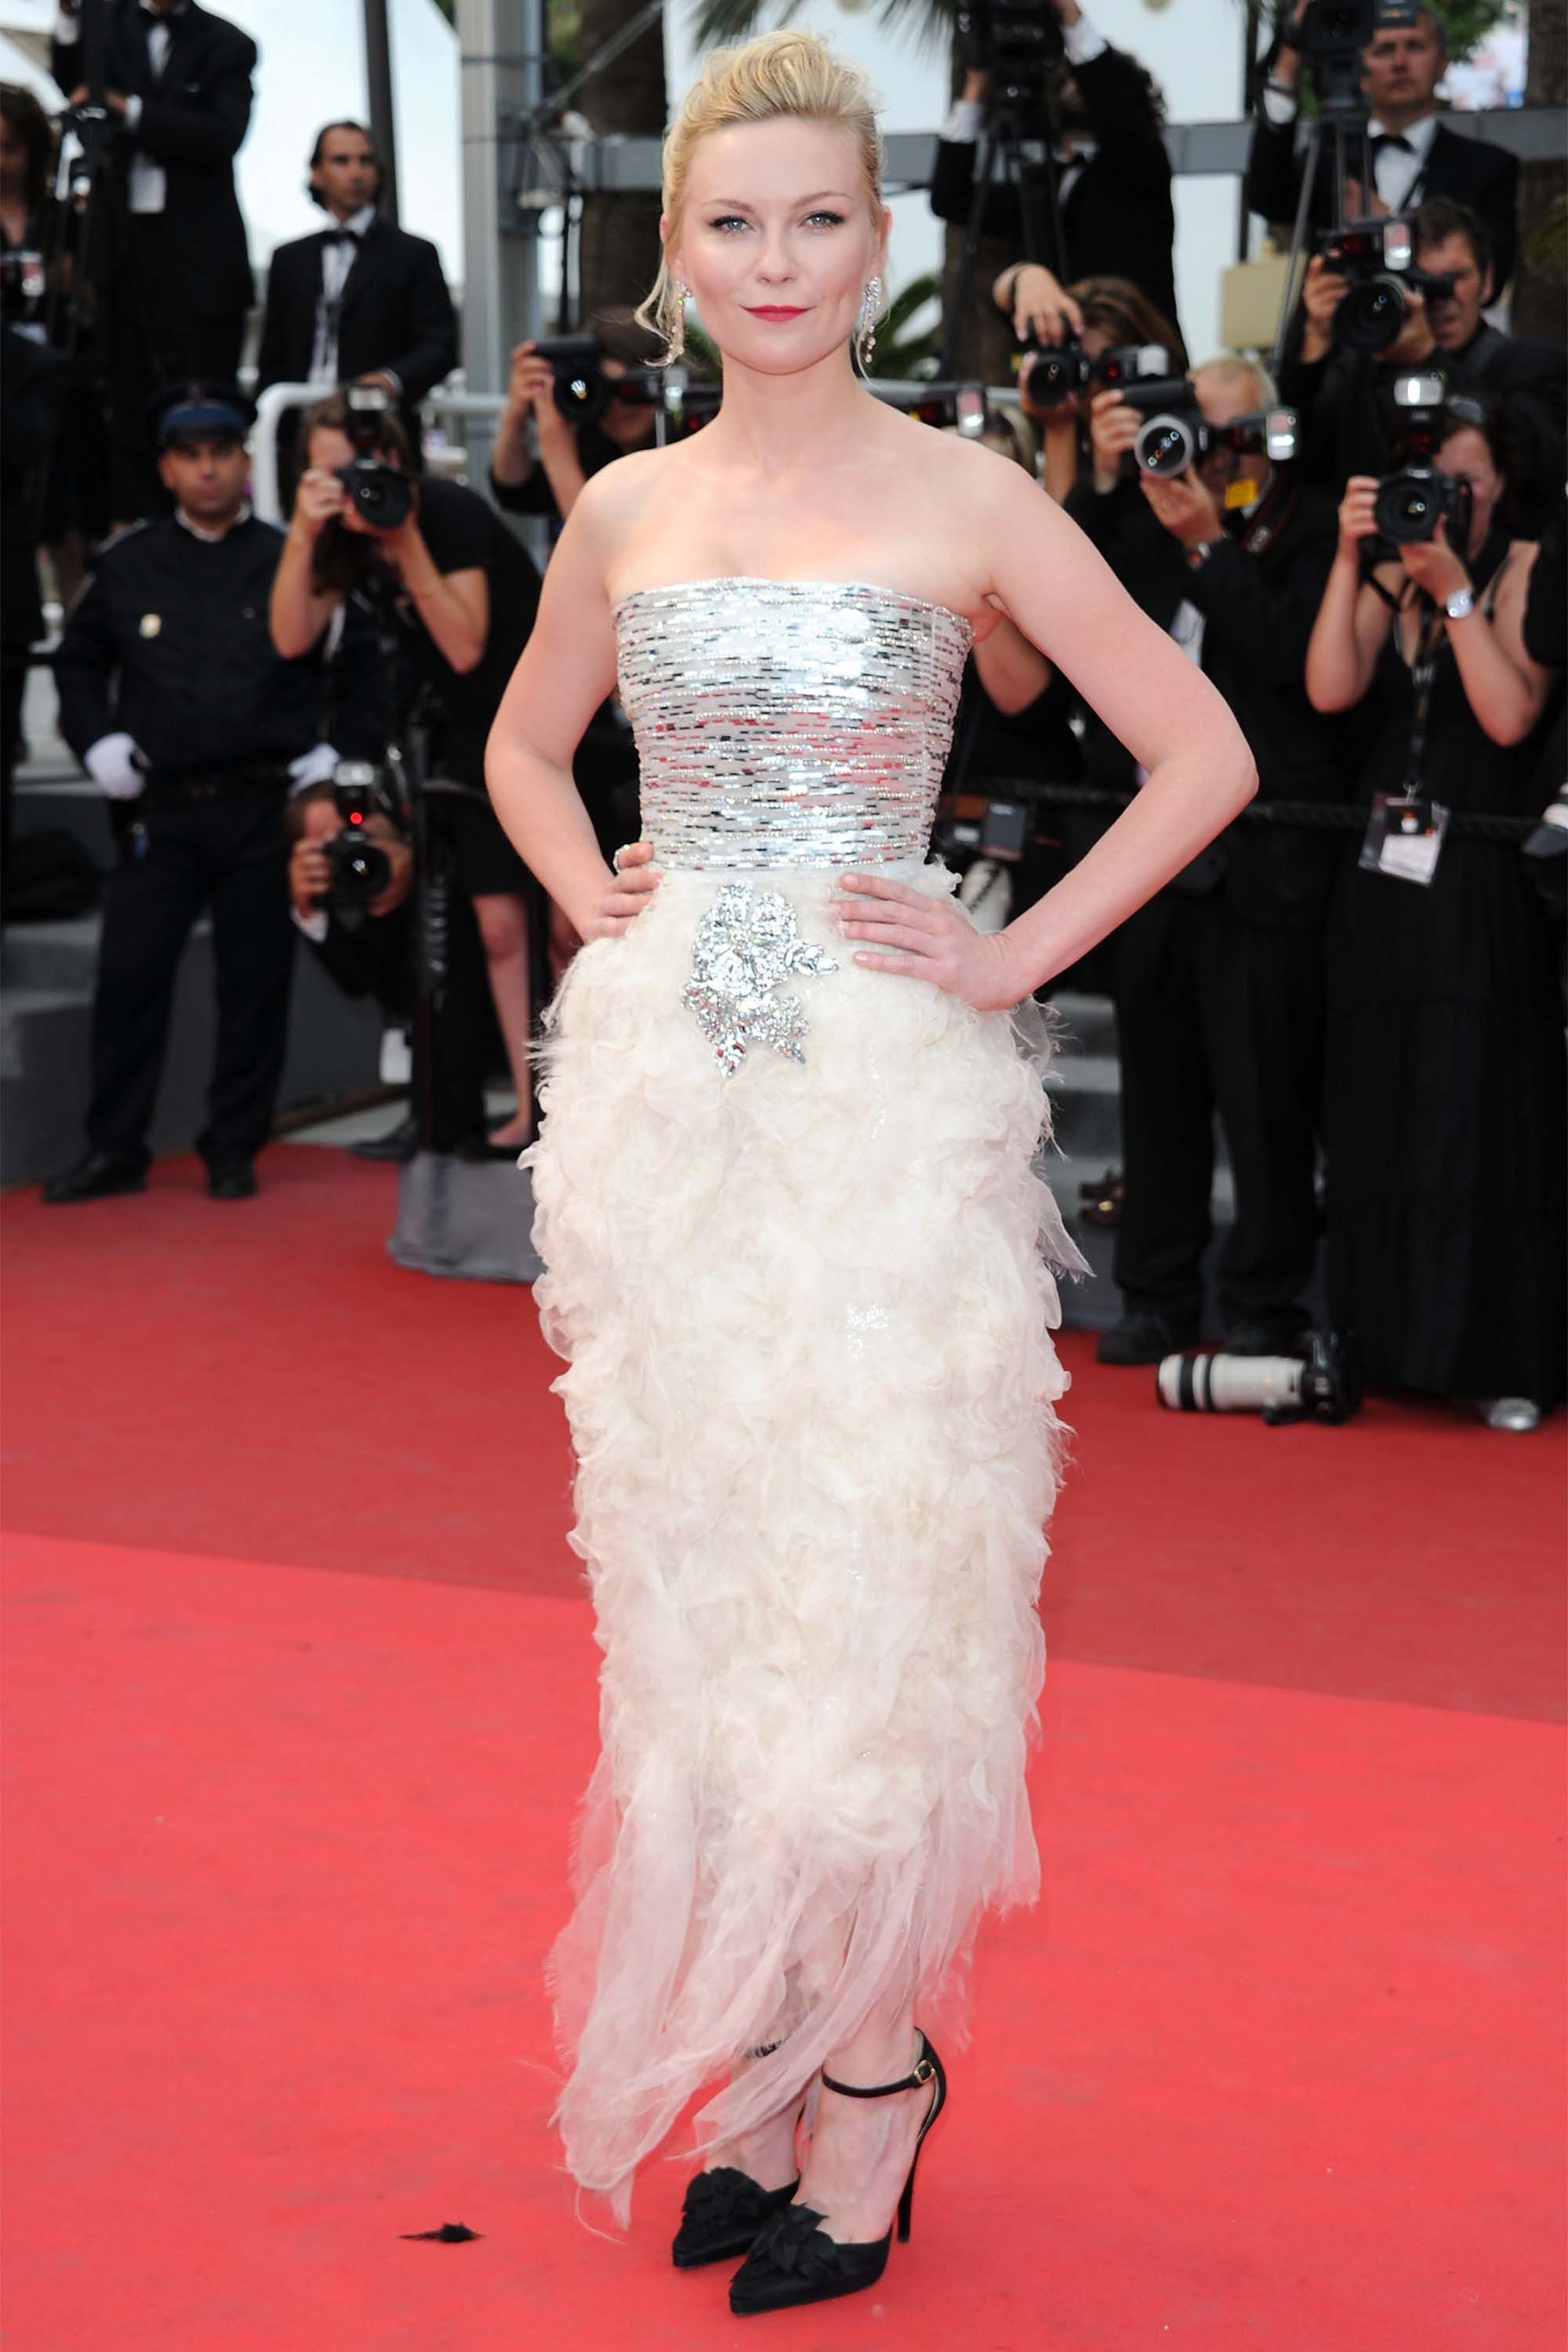 eb7240e7b23 70 Best Cannes Dresses of All Time - Cannes Film Festival Celebrity Red  Carpet